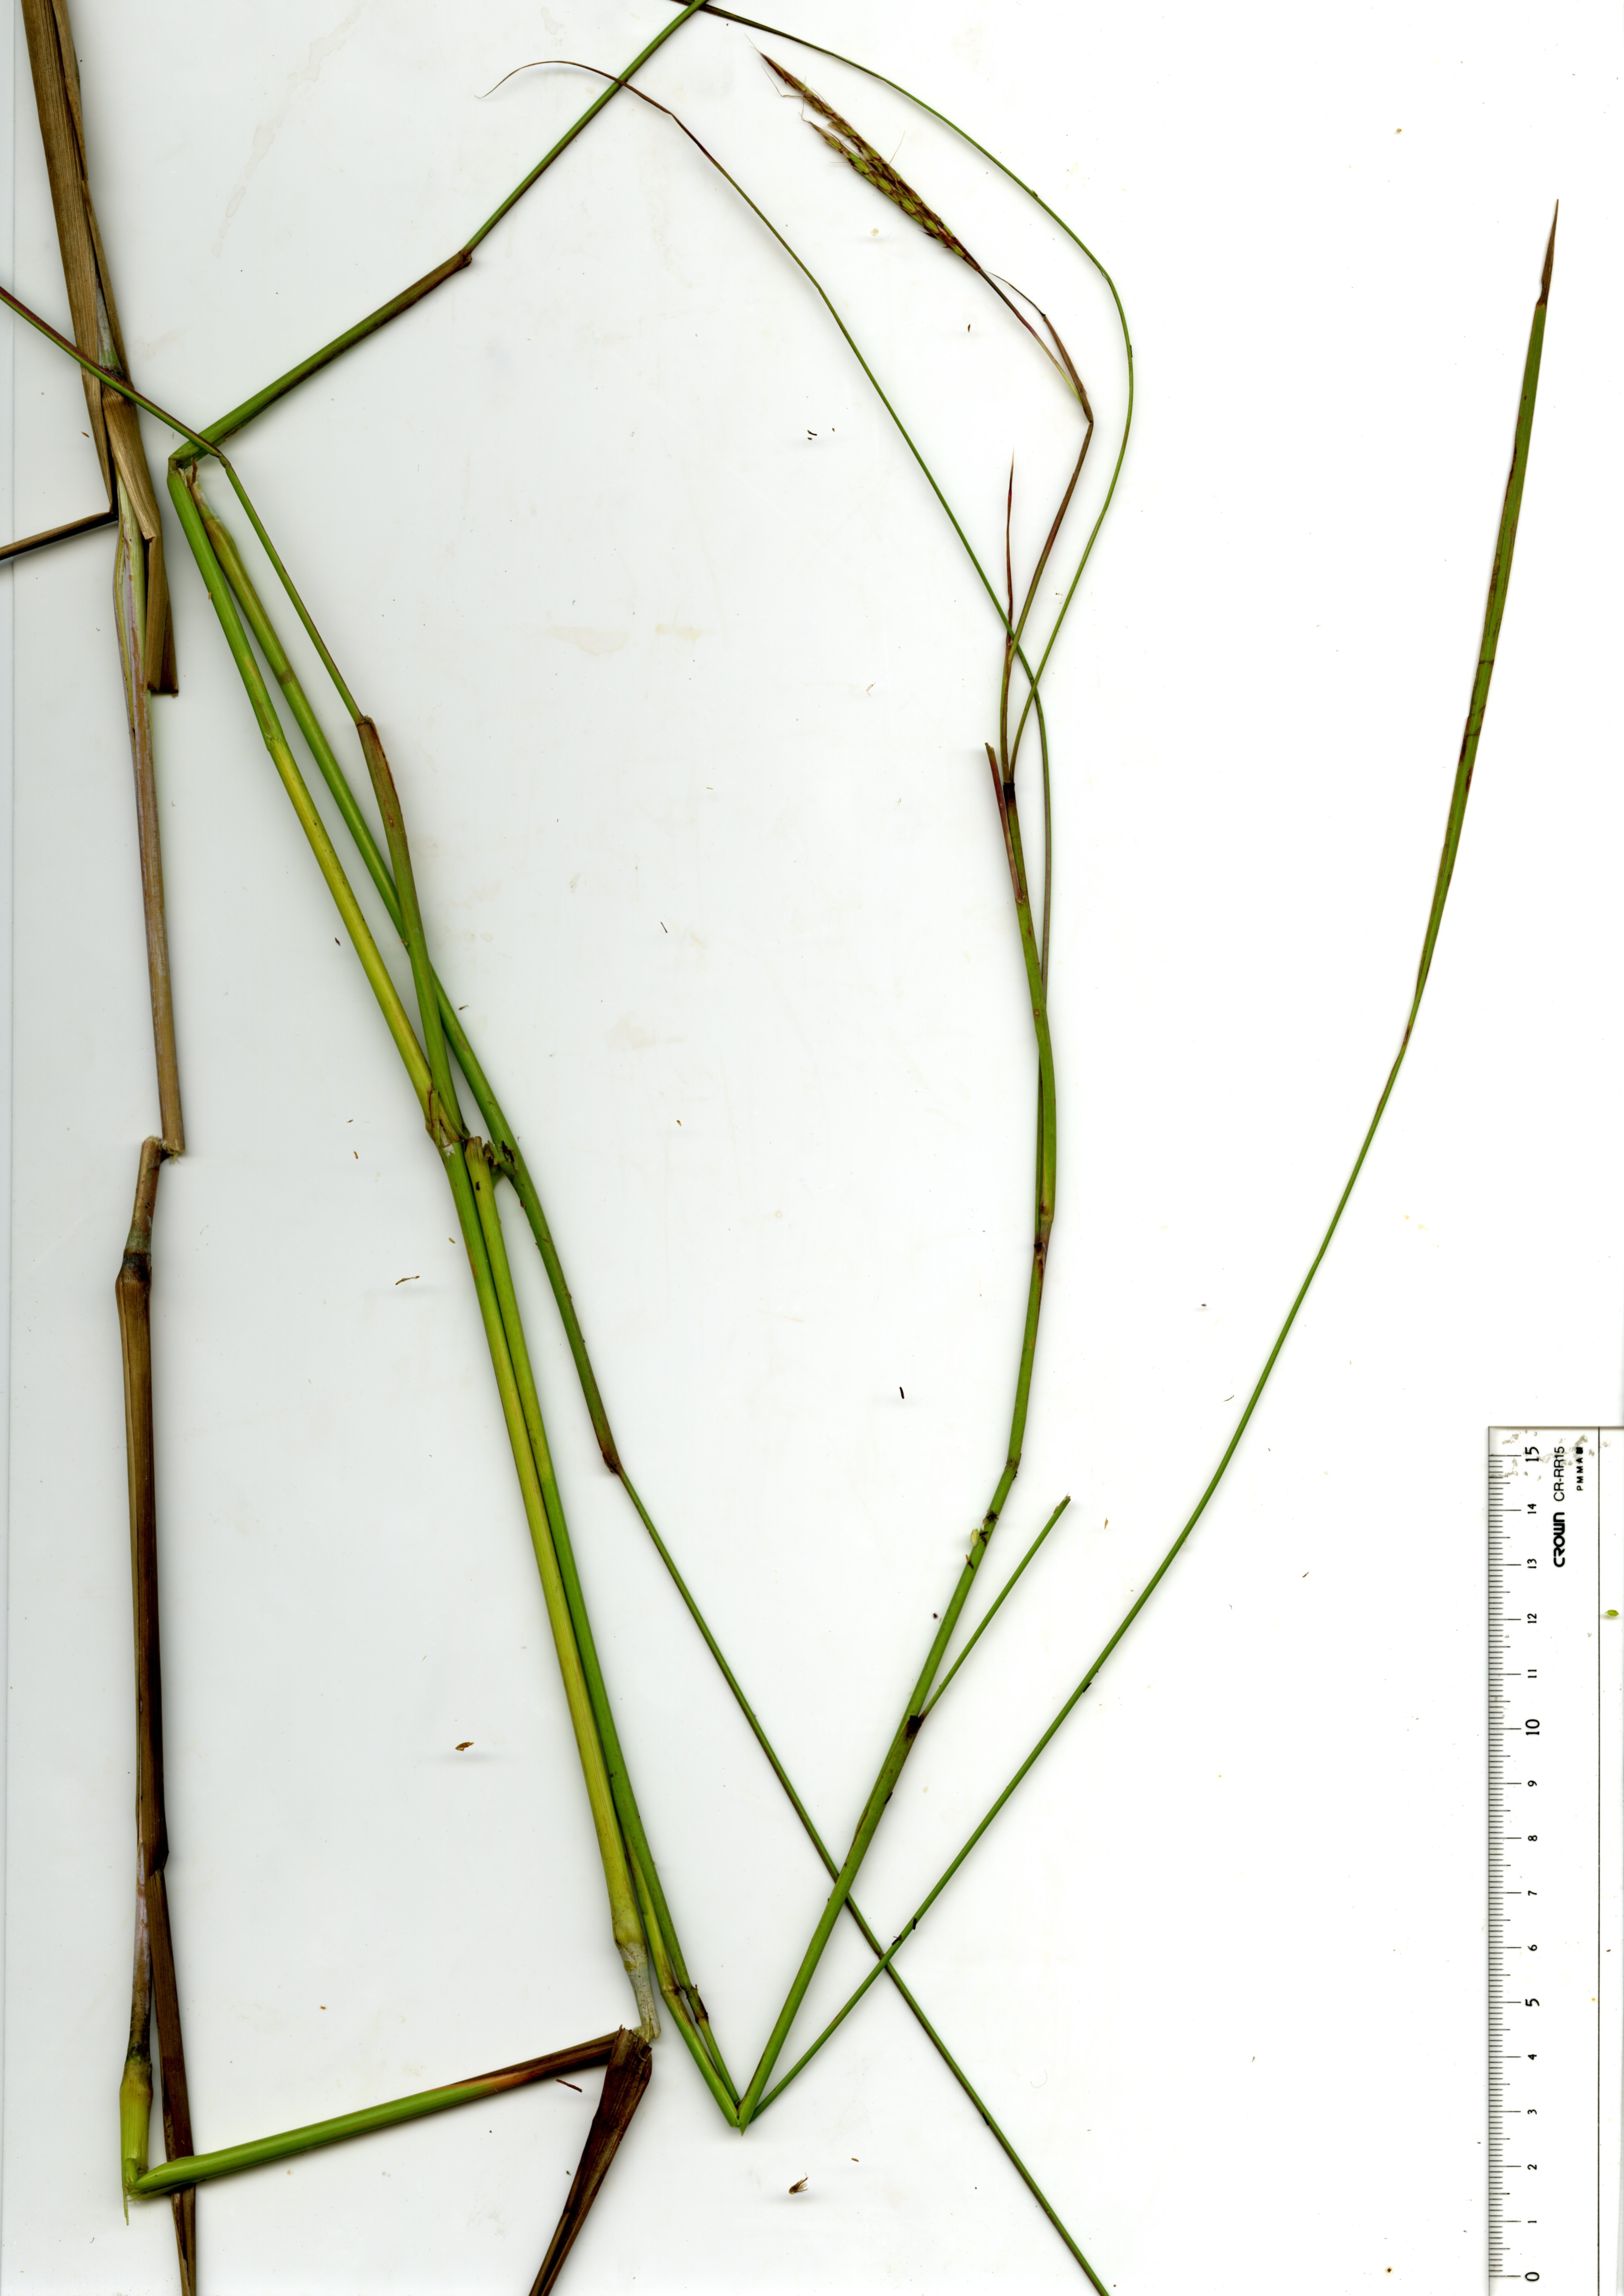 Whole plant with panicles